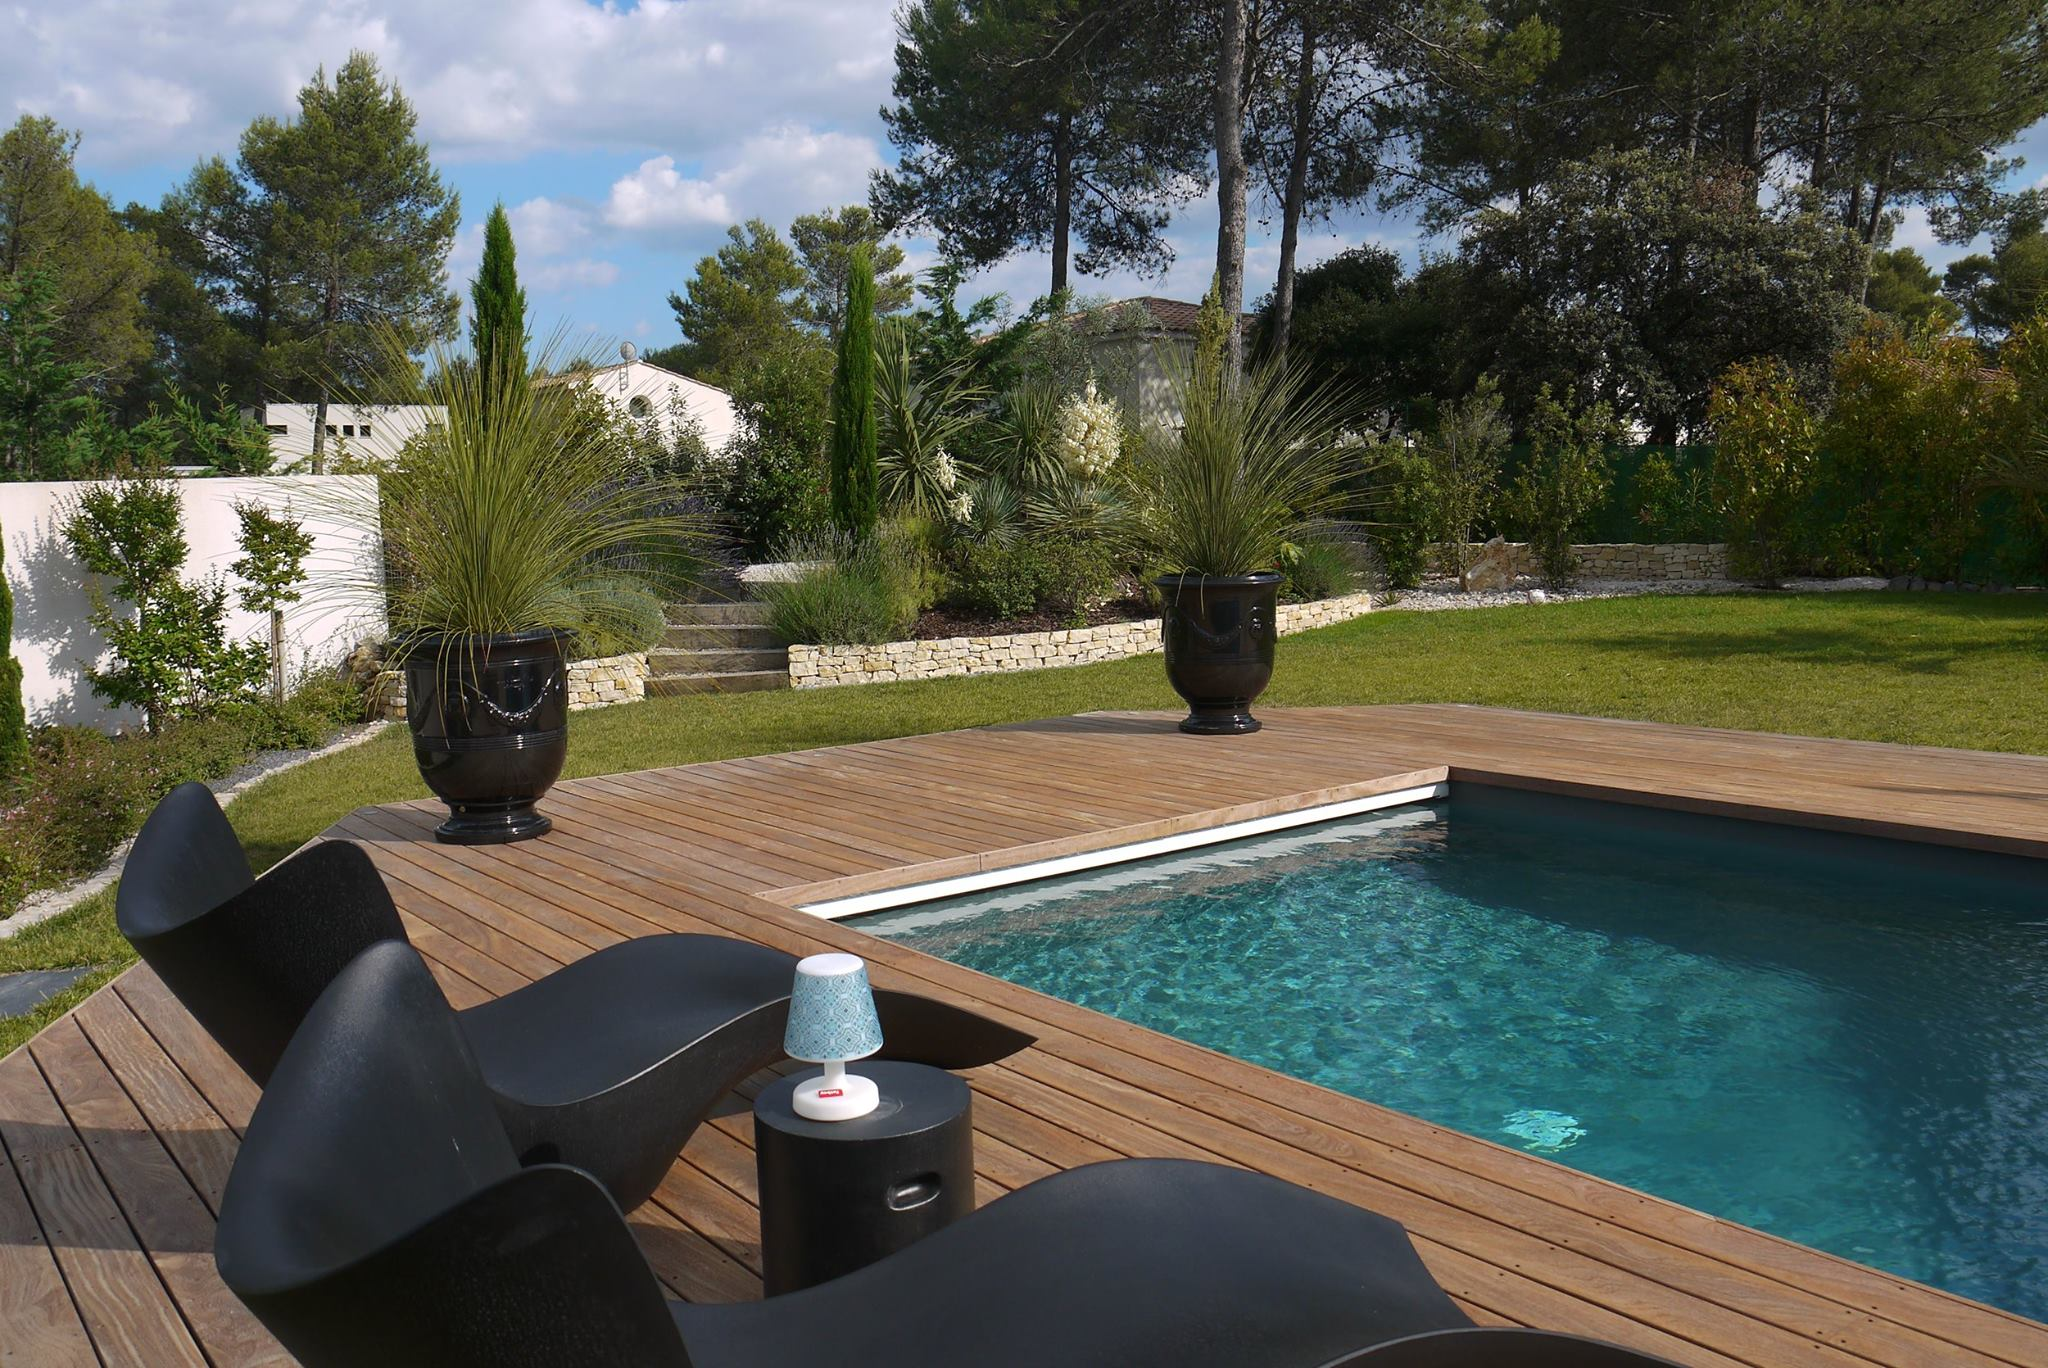 Paysagiste montpellier amenagement jardin decoration jardin for Amenagement jardin design